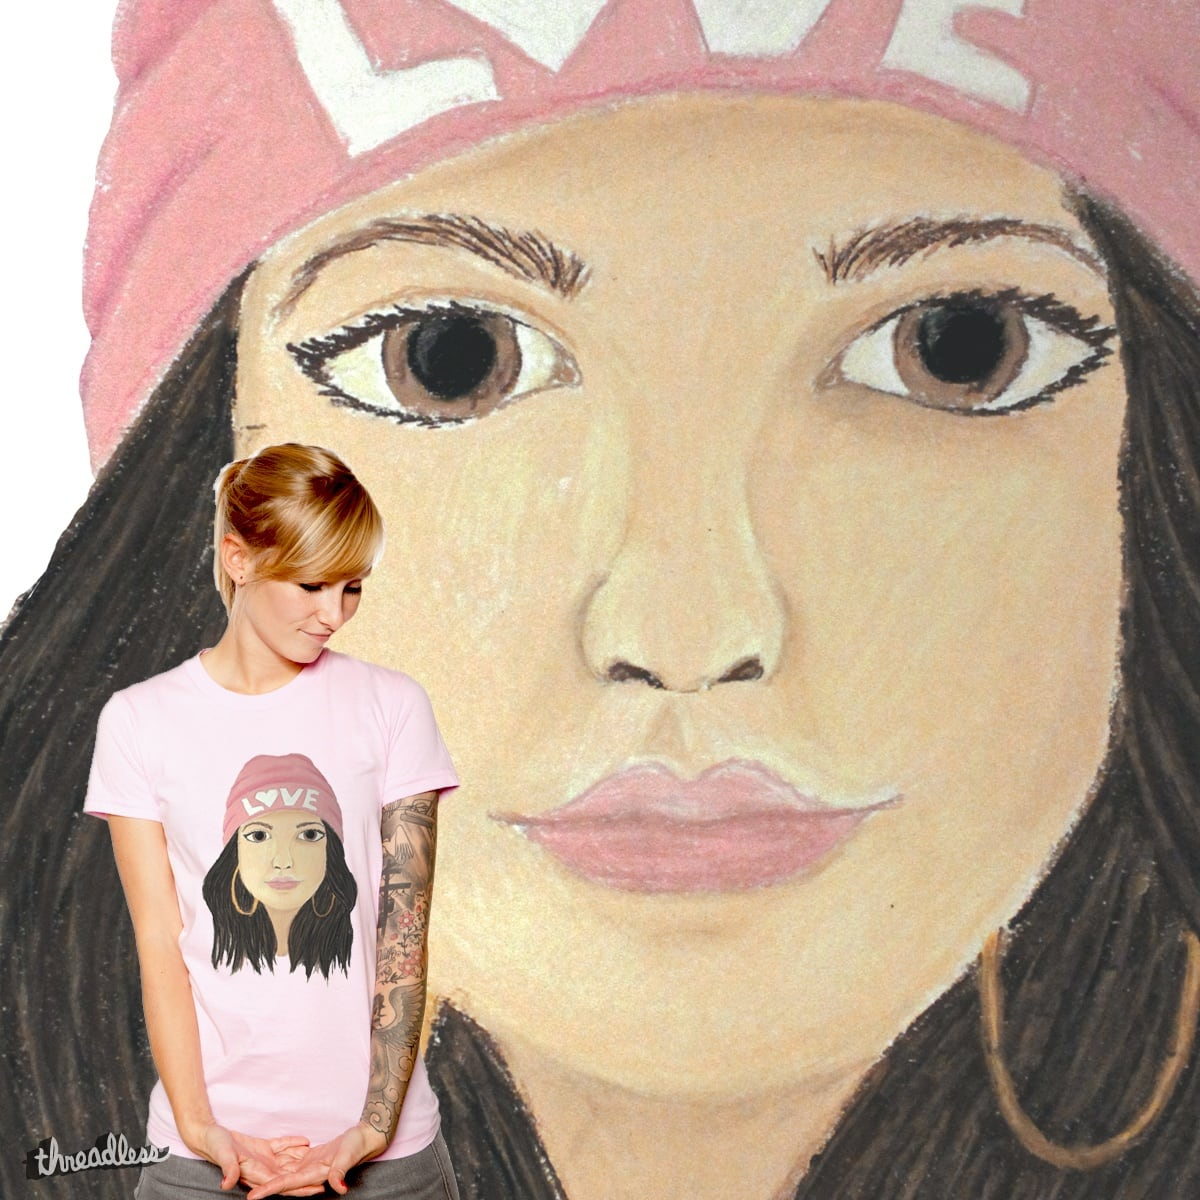 pastel love by babblzzz on Threadless